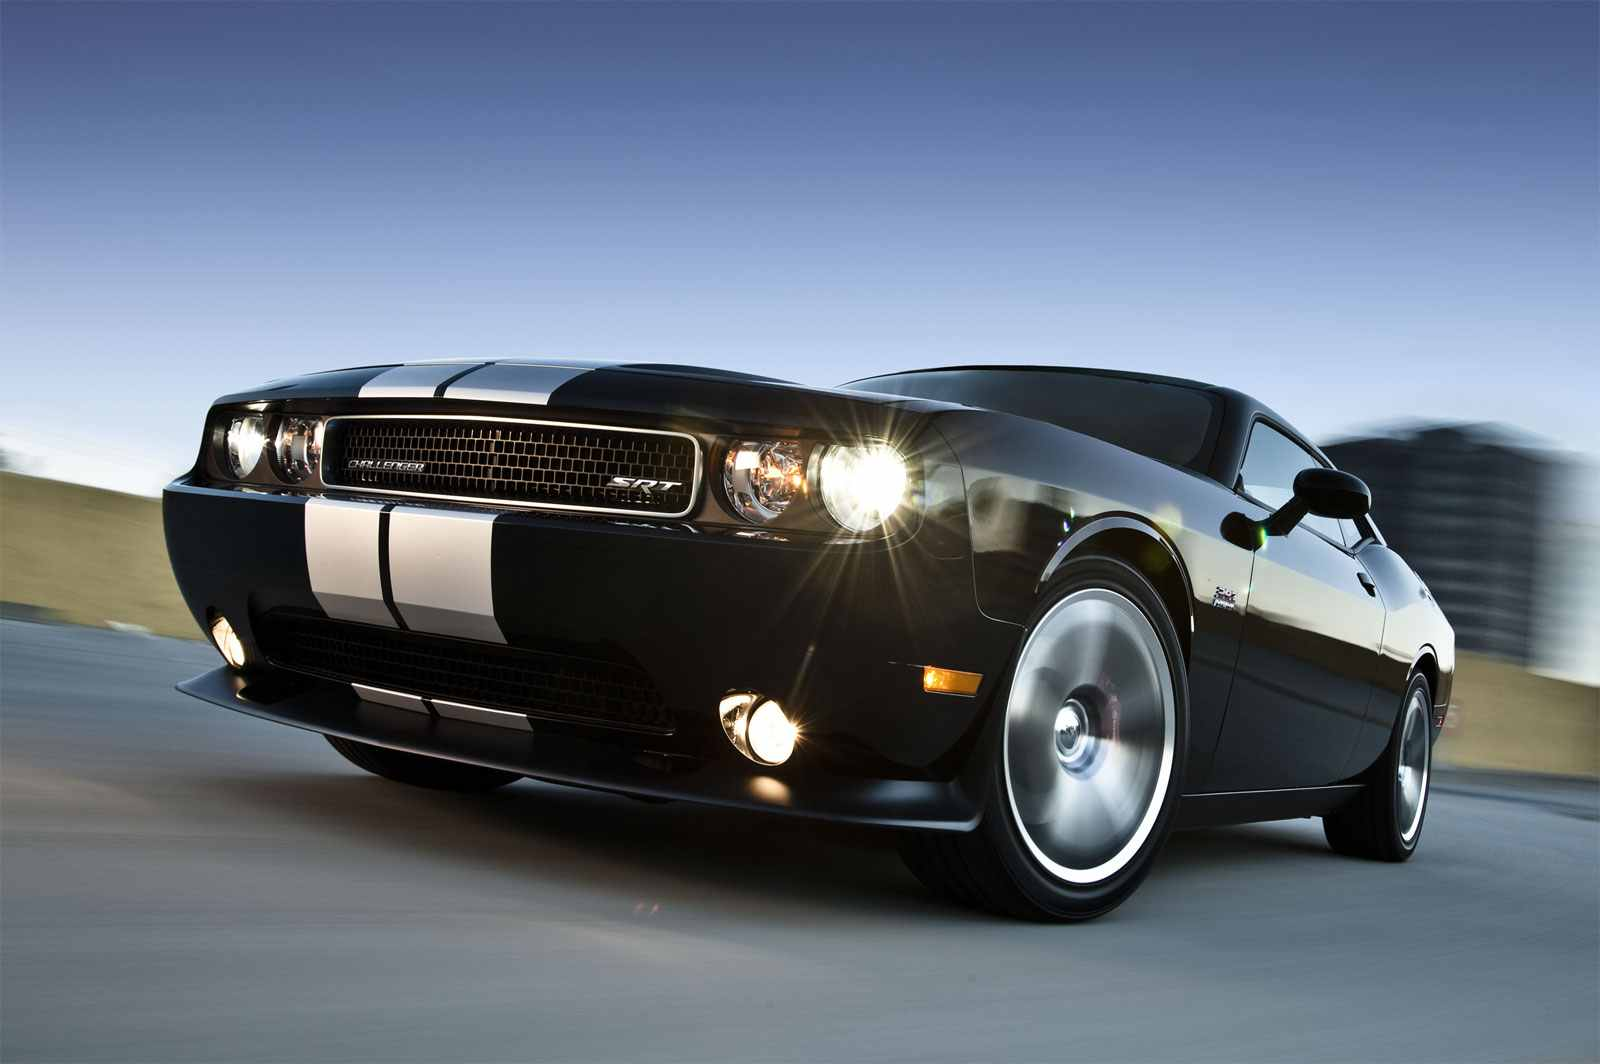 2012 dodge challenger srt8 392 live stream. Black Bedroom Furniture Sets. Home Design Ideas